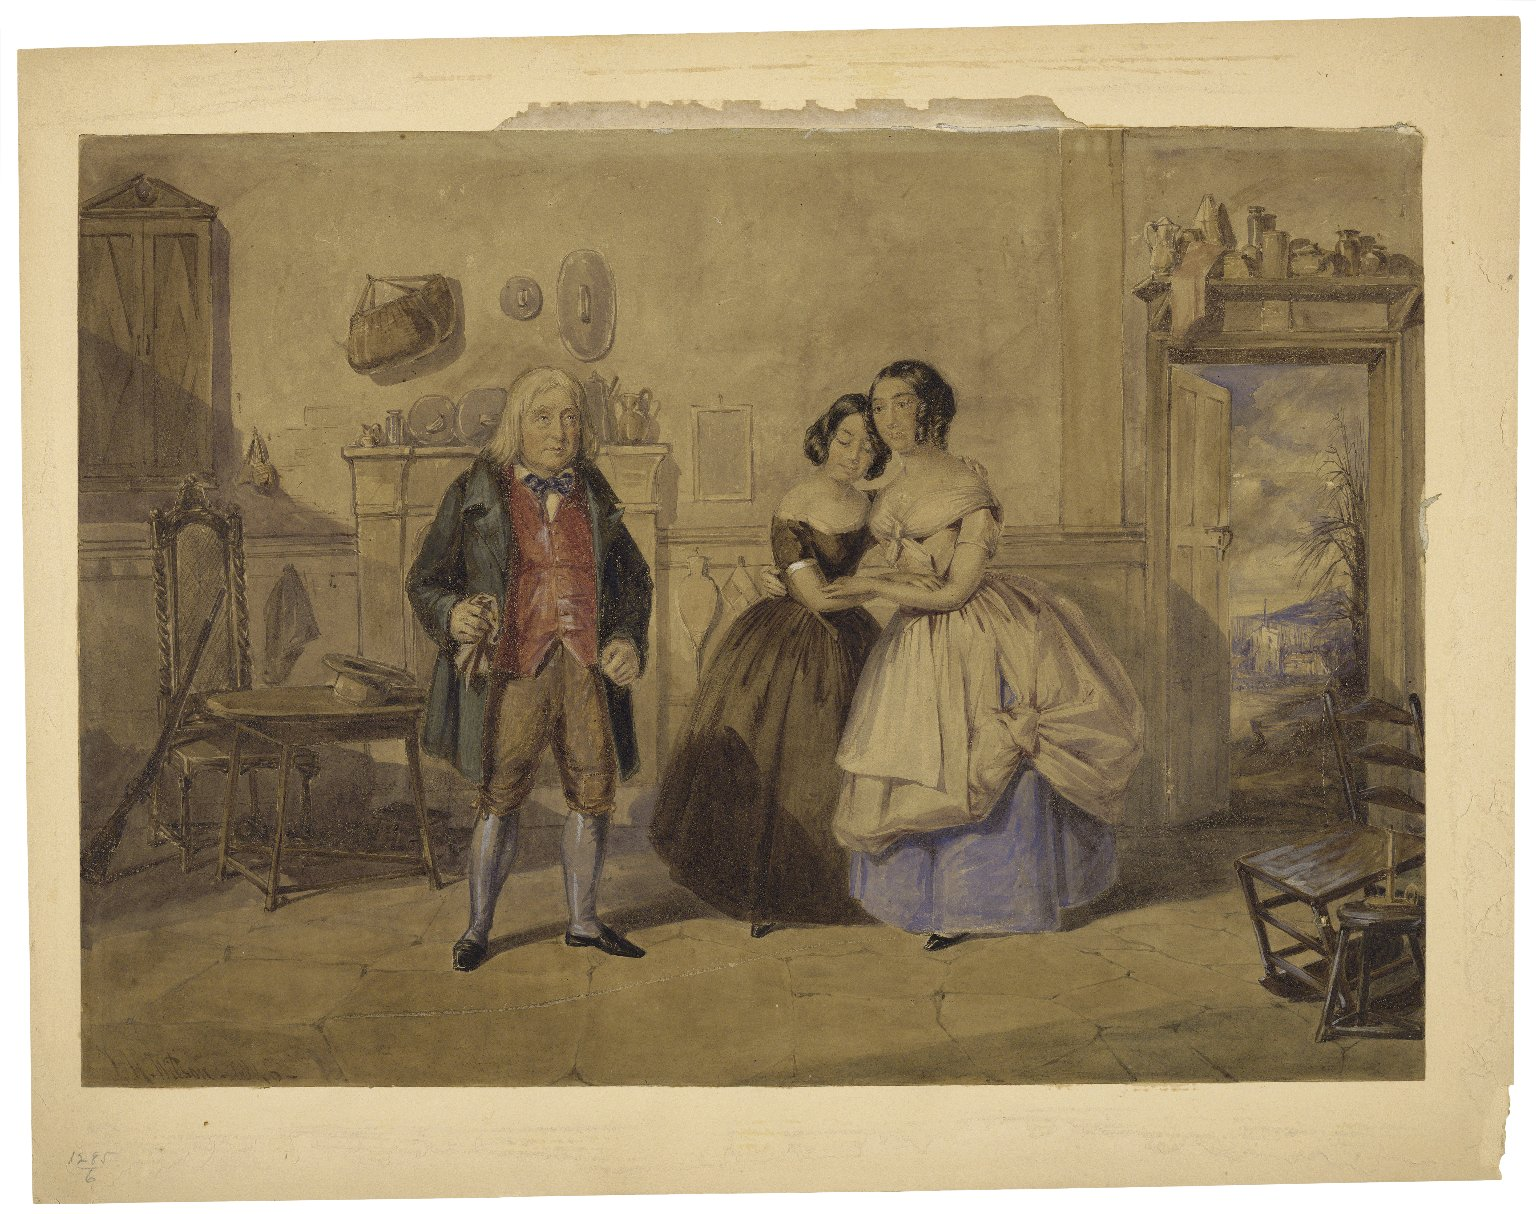 [Mr. and Mrs. Keeley in Cricket on the hearth] [graphic] / T.H. Wilson, 1846.